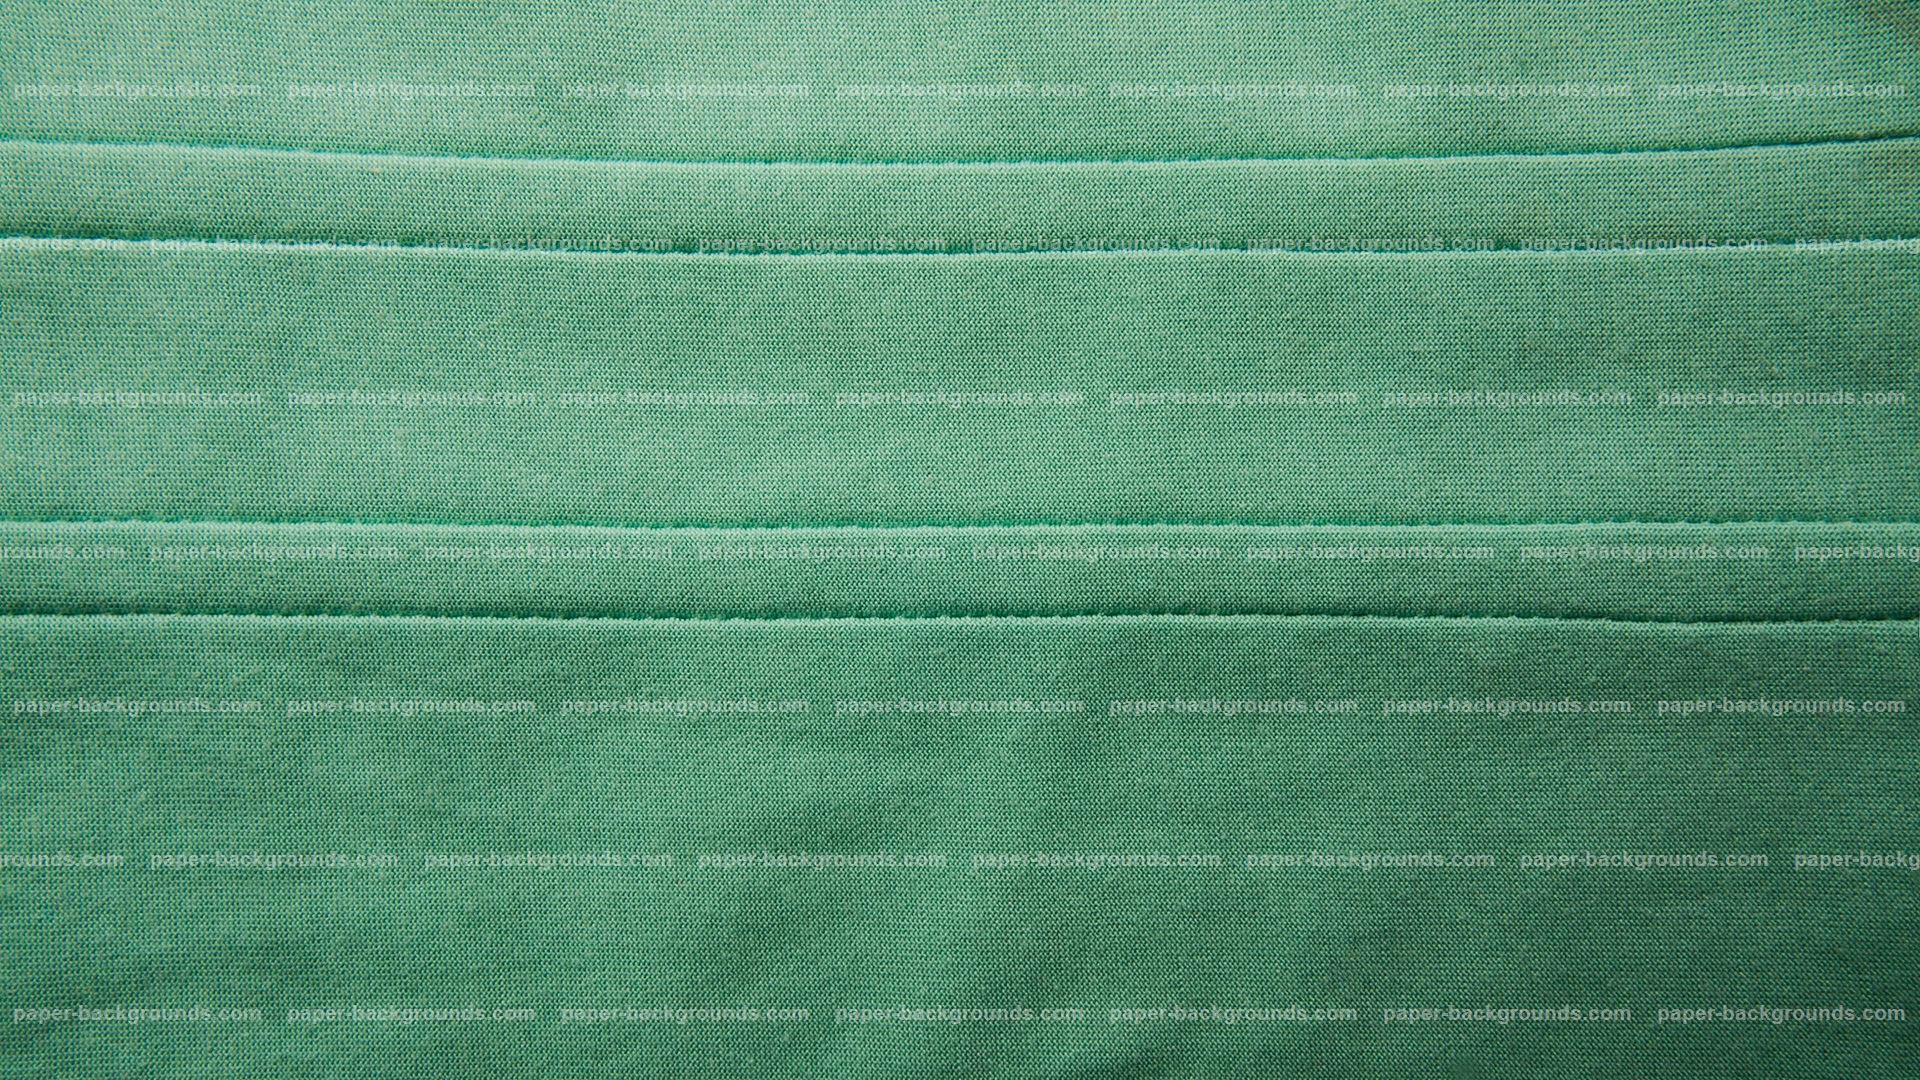 Green Fabric Canvas Texture with Stitches HD